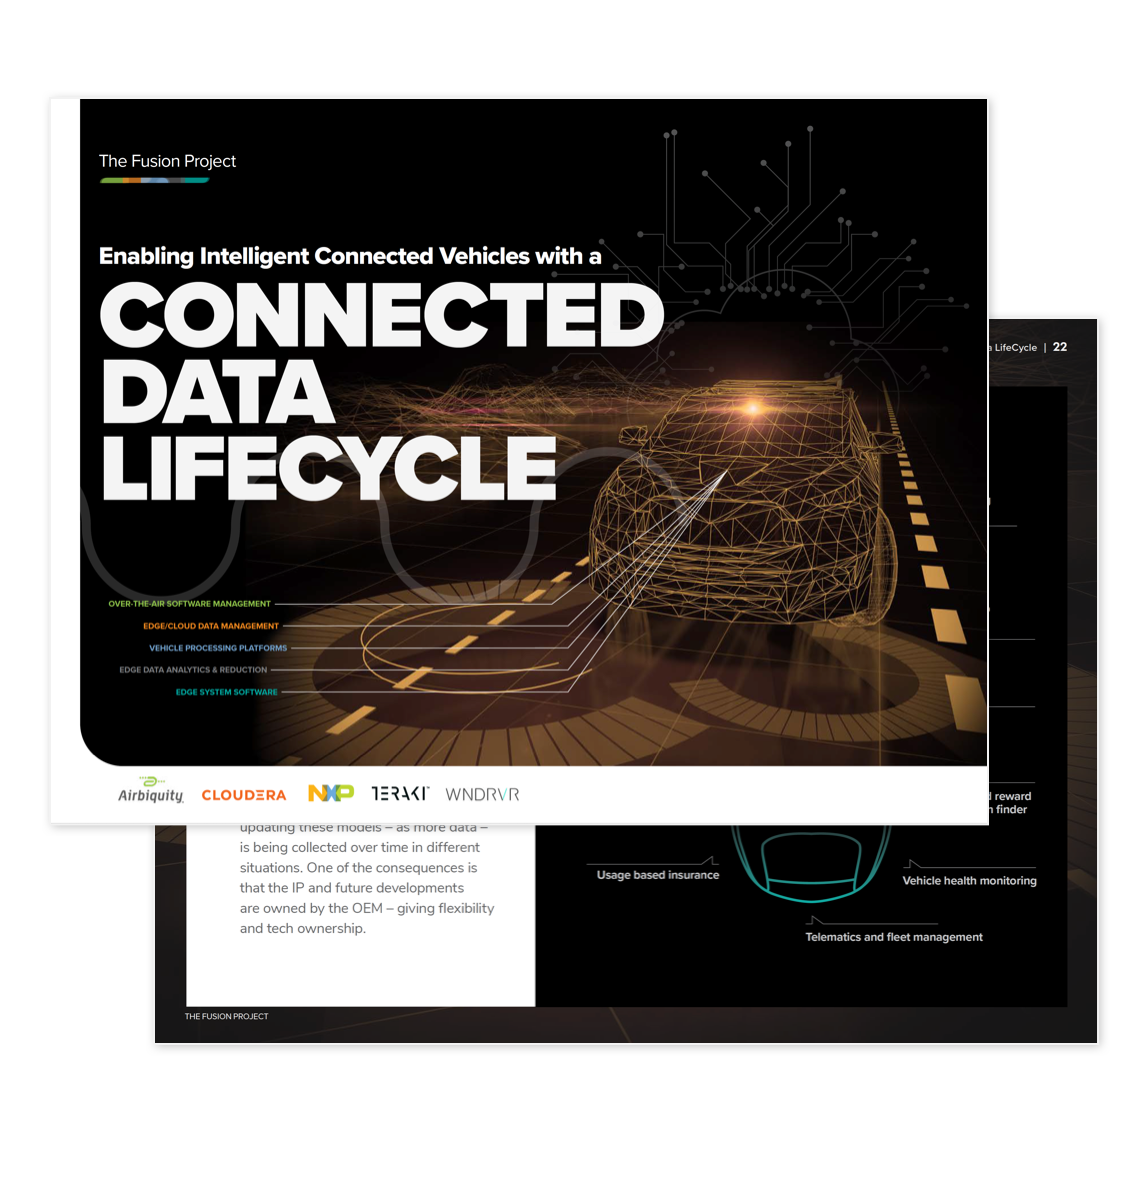 Thumbnail of Fusion Connected Data Lifecycle